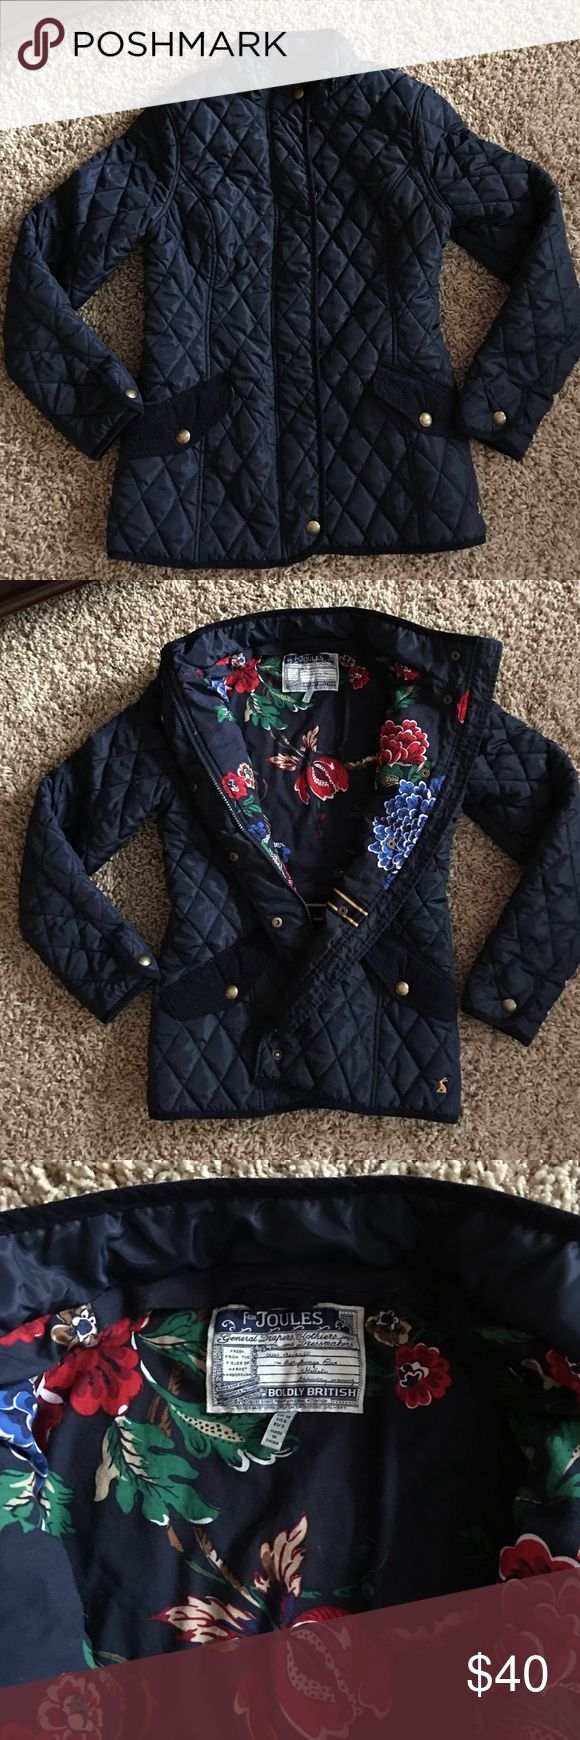 Joules Equestrian Field Jacket Joules Equestrian Field Jacket  in Navy blue.  Quilted outer material with inner zipper/snap.  Two front pockets with velour velveteen flap.  Inner floral lining.  Size Medium.  In excellent preowned condition. Joules Jackets & Coats Utility Jackets